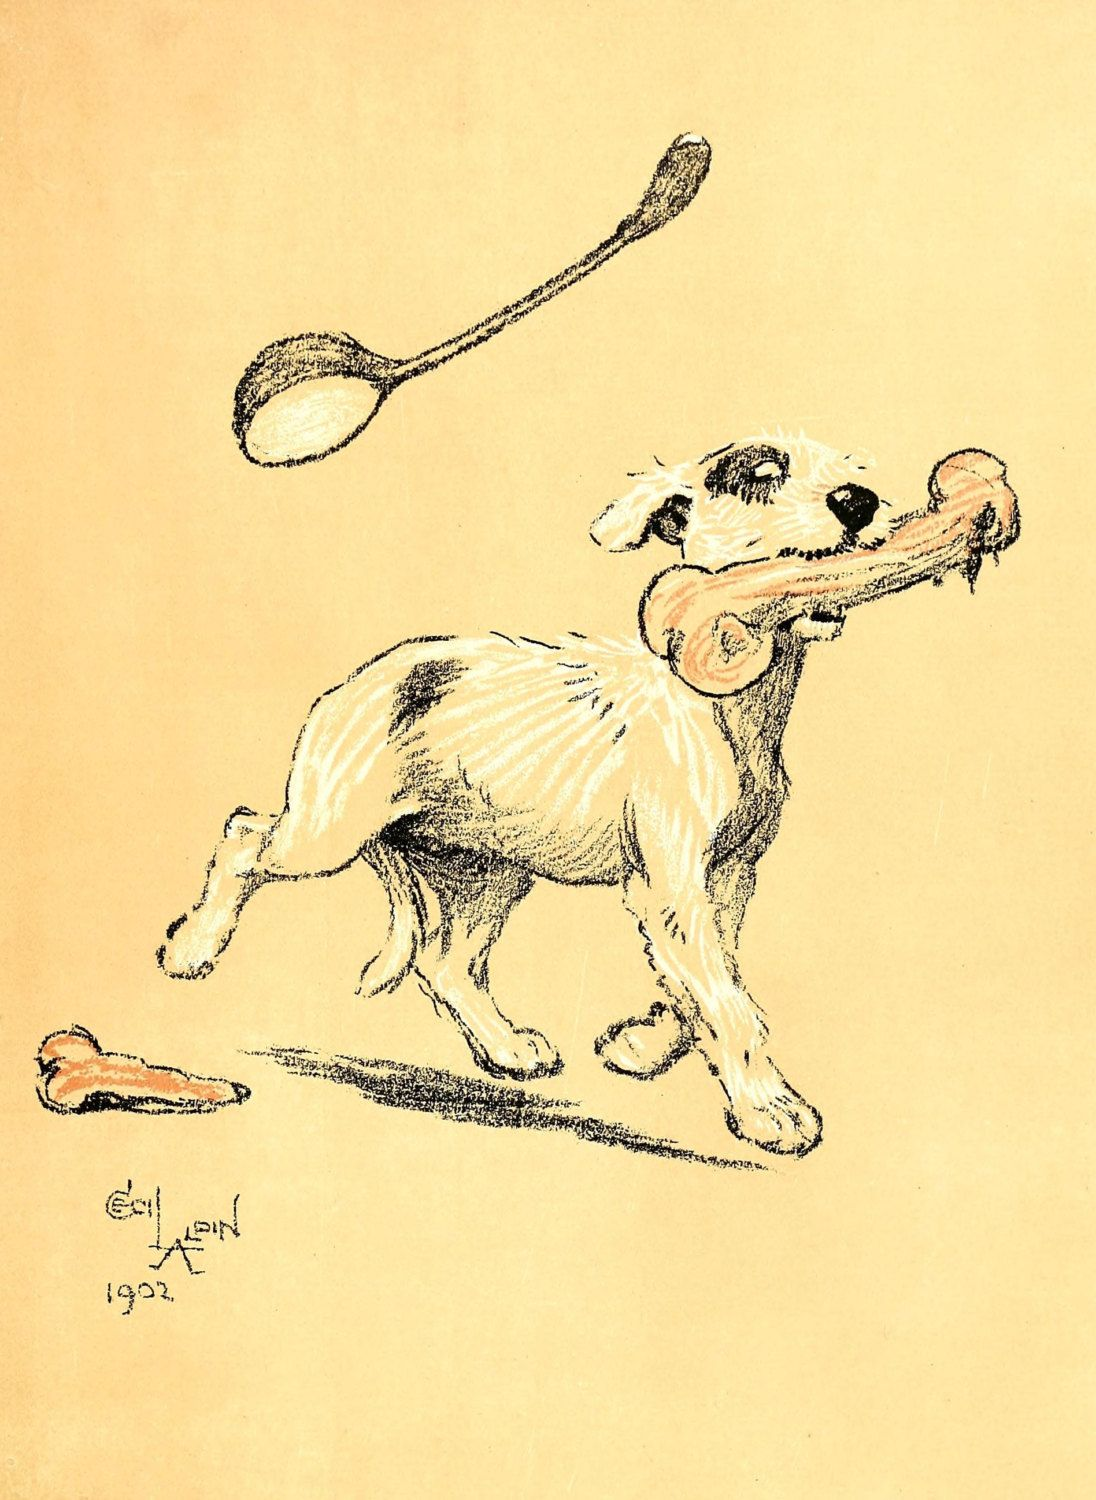 Cecil Aldin A Dog's Day Vintage Reproduction Photo Print  # 21 of 27 by A4Printsuk on Etsy